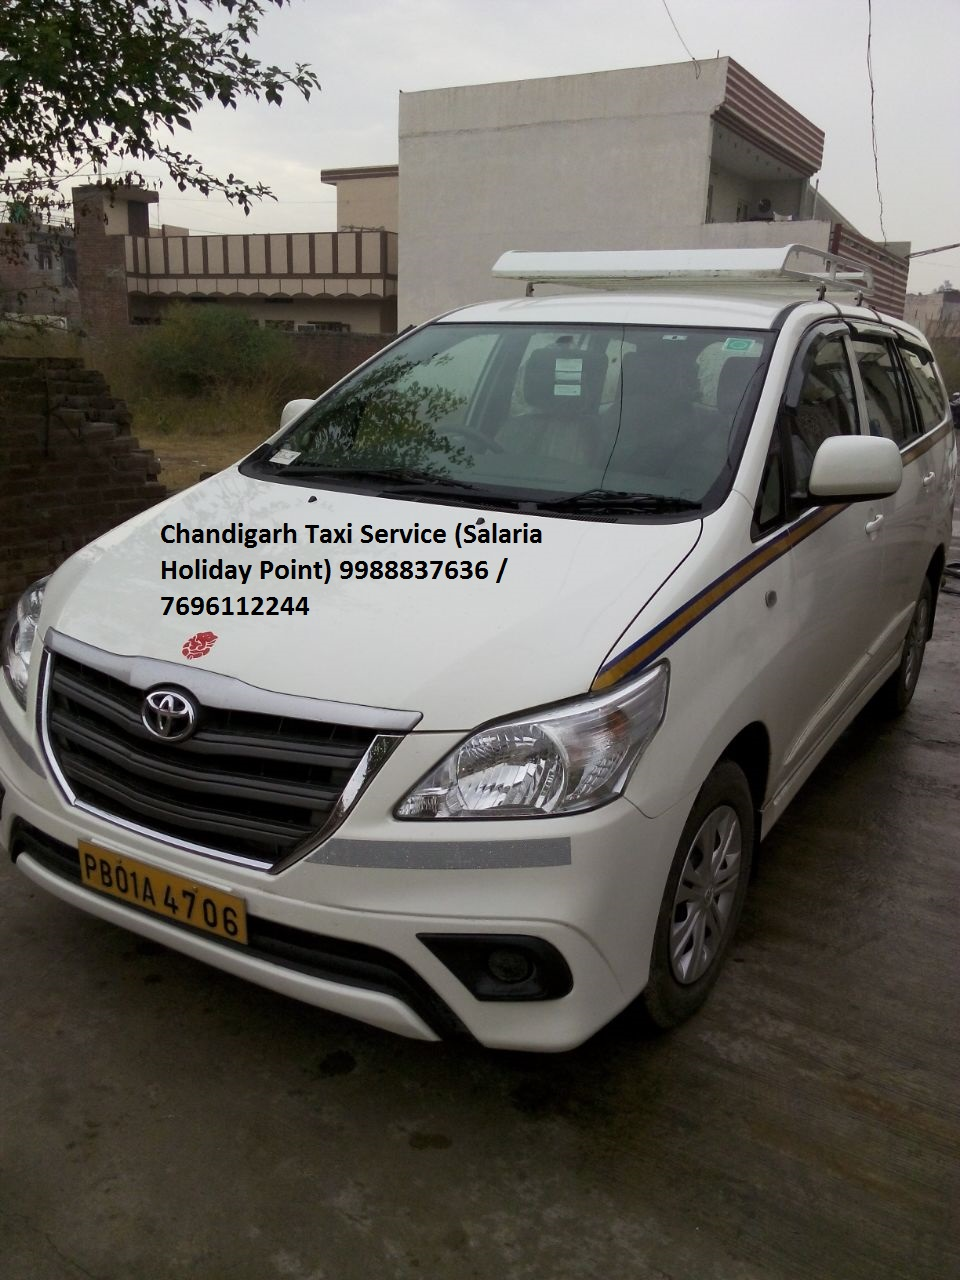 Taxi Service Chandigarh Best Services To Shimla New Kijang Innova 24 G A T Booking Fee Dharamshala